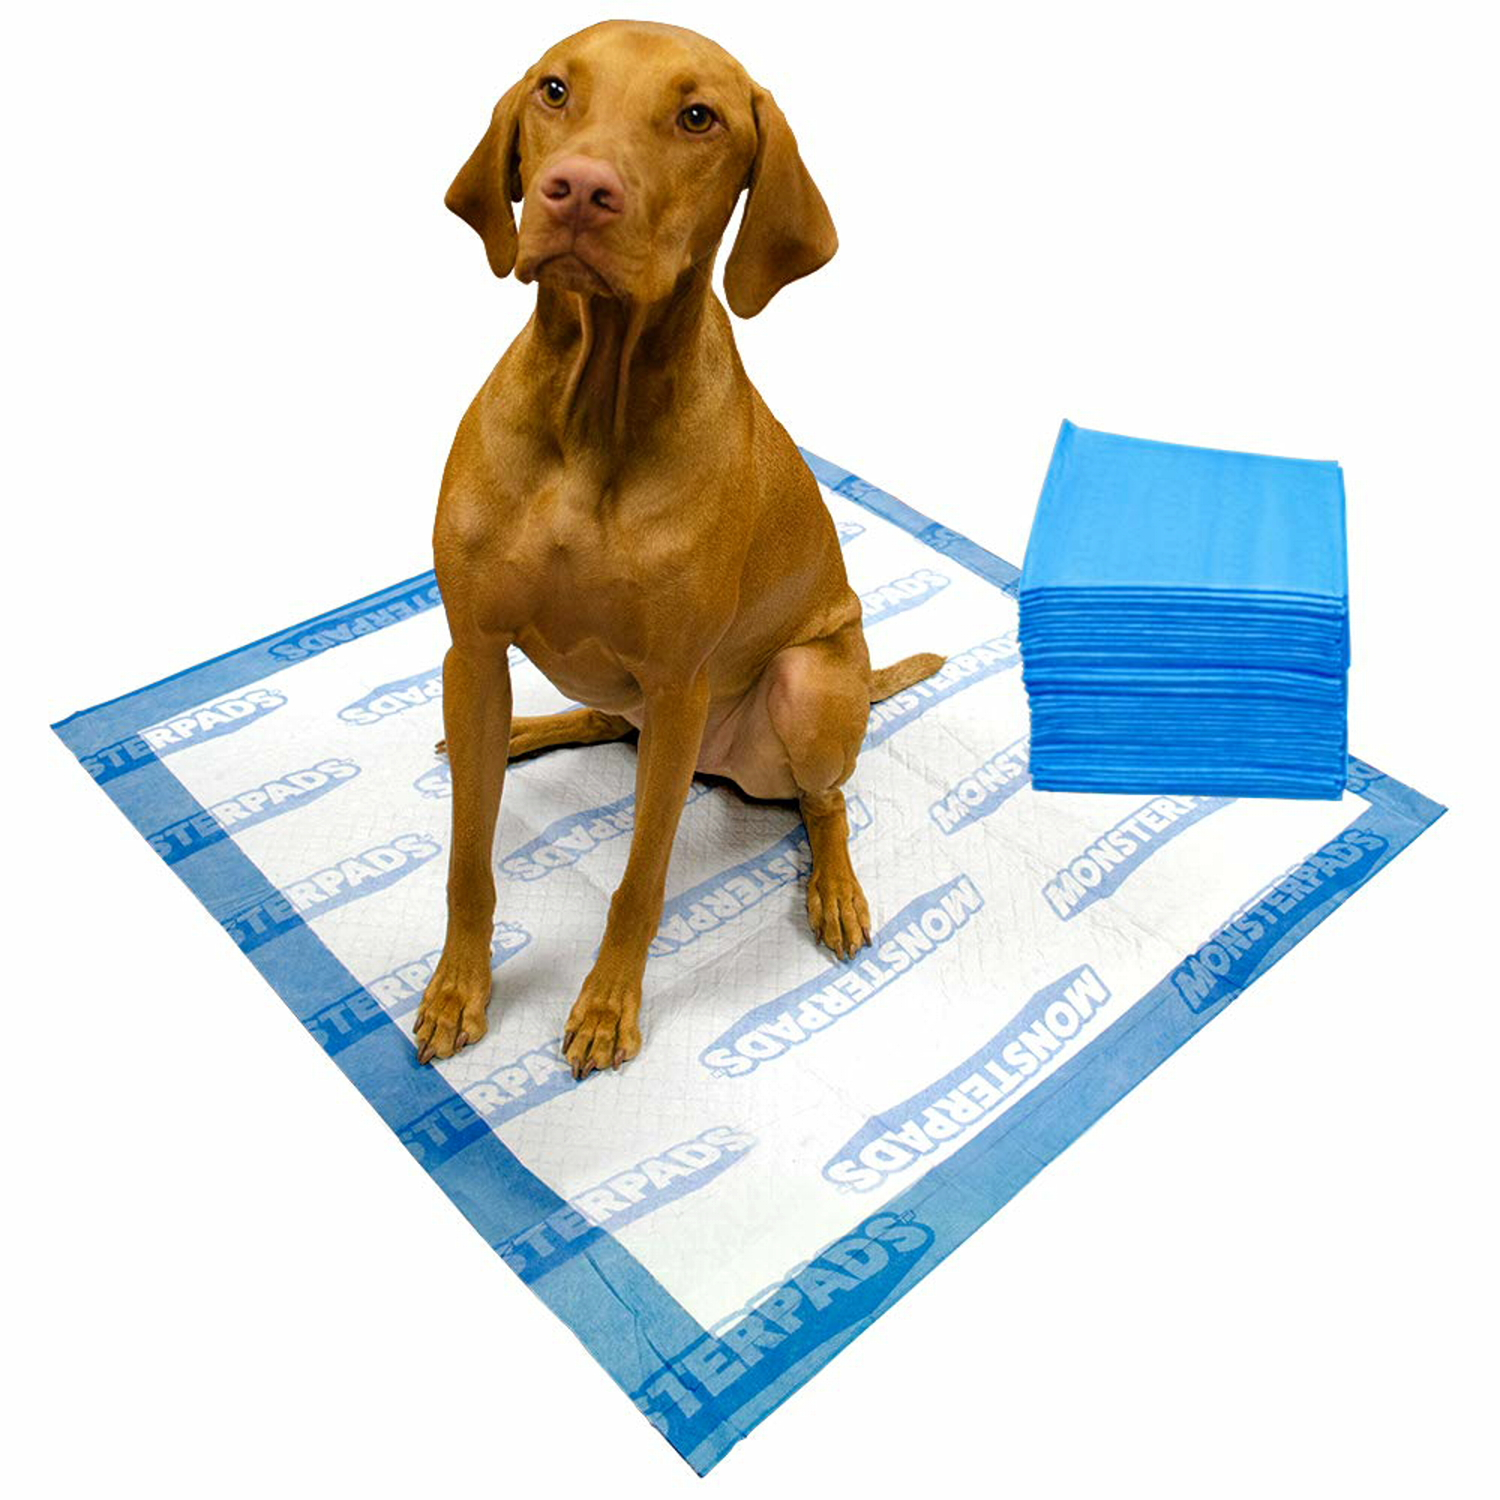 OUT! MonsterPads 7-Layer Dog Training Pads, 36x36 Inch, 40 Count